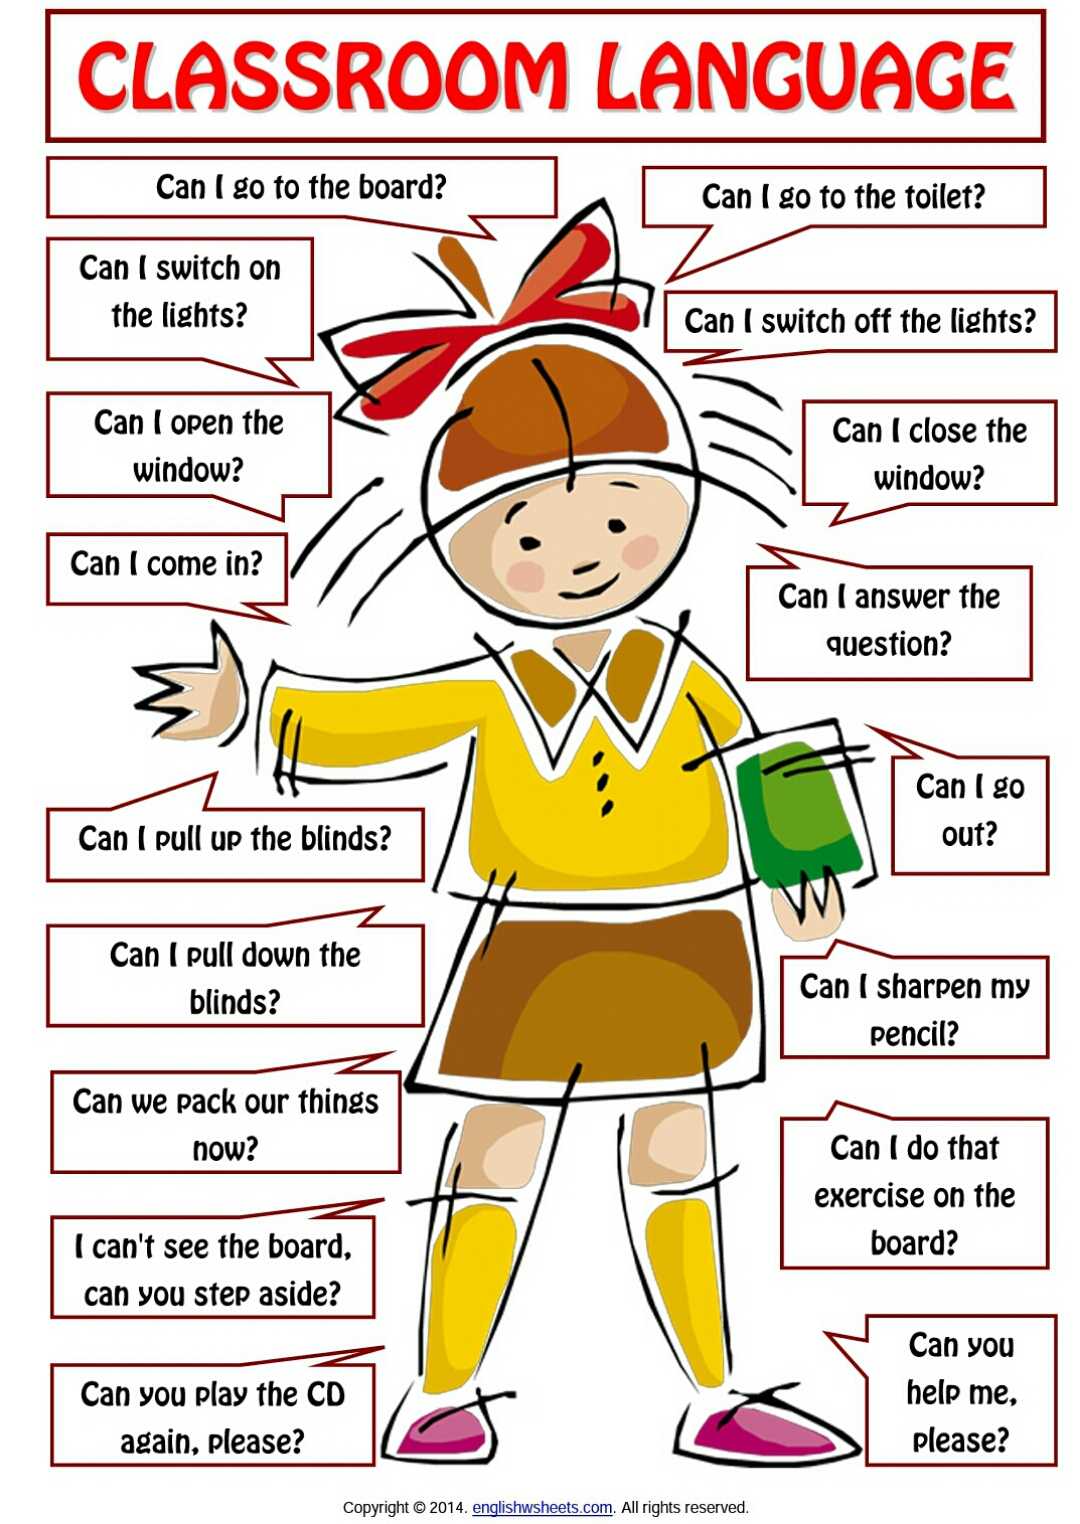 Skpanji Classroom Language For Students Poster Worksheet